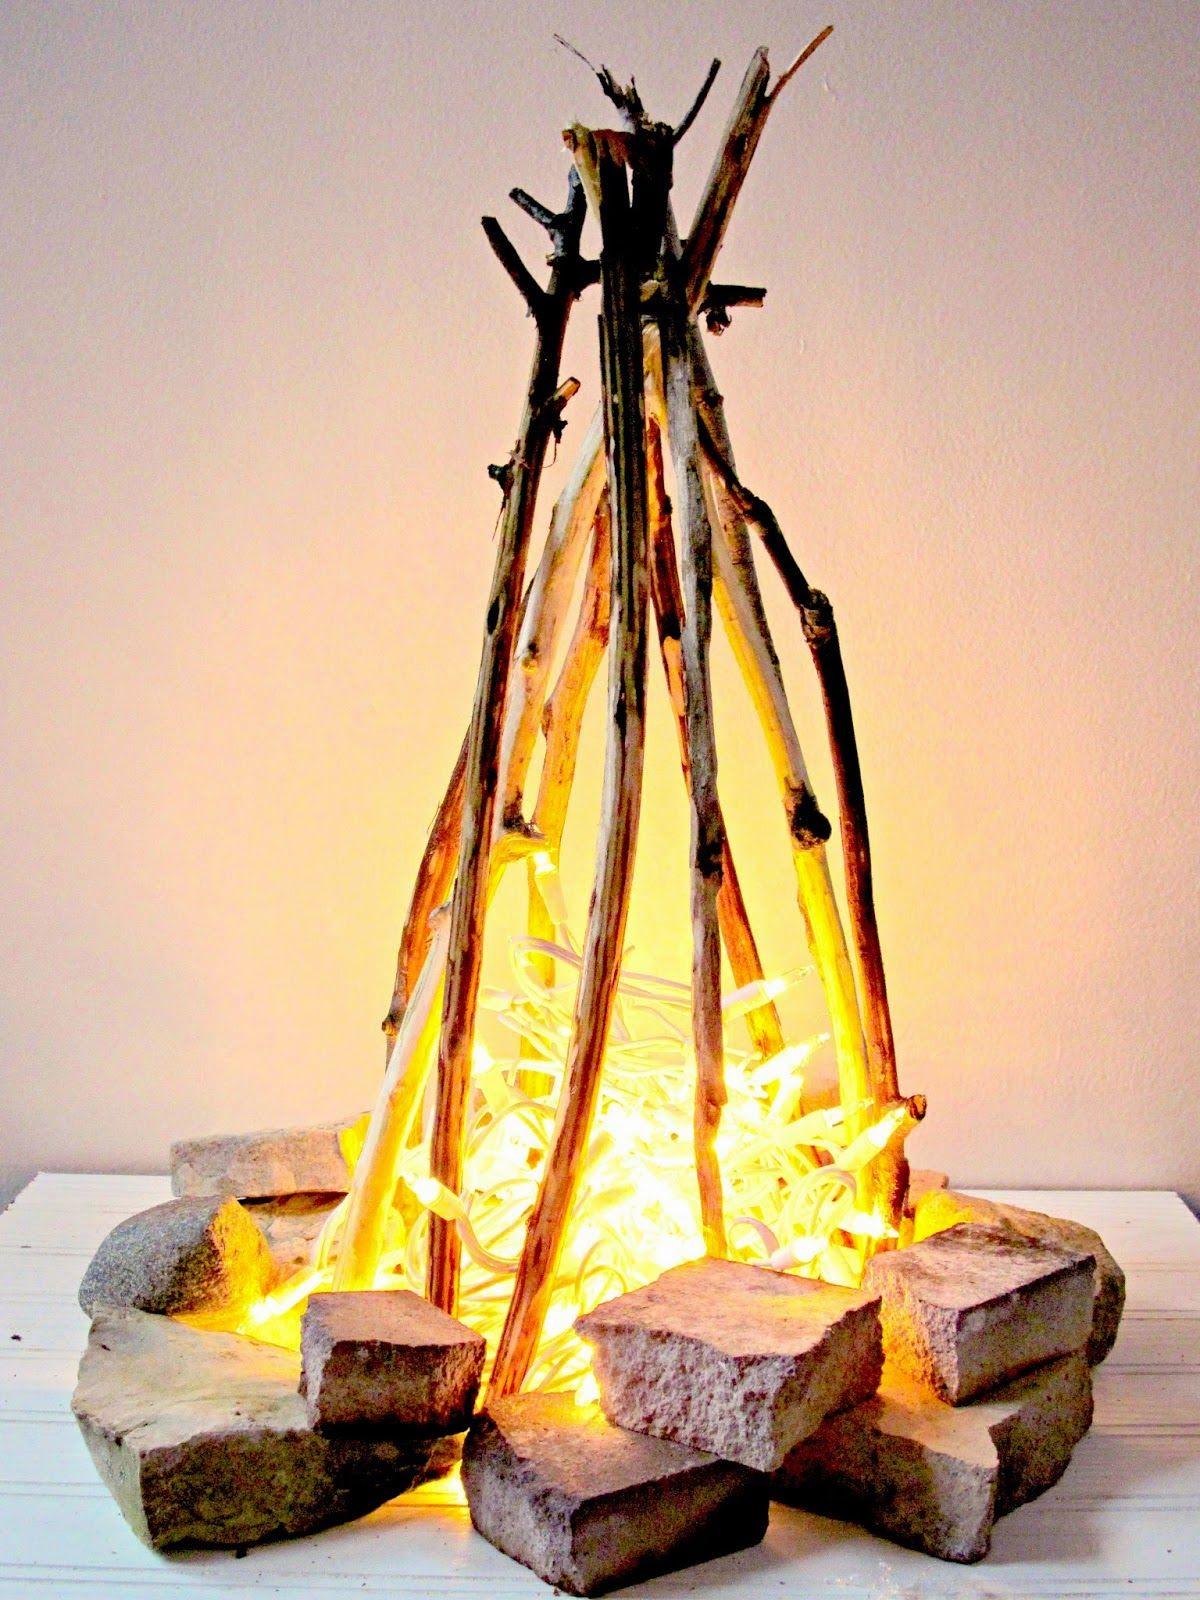 DIY FLAMELESS FIRE PIT | A Piece of Creativity - DIY FLAMELESS FIRE PIT A Piece Of Creativity Diy Flameless Fire